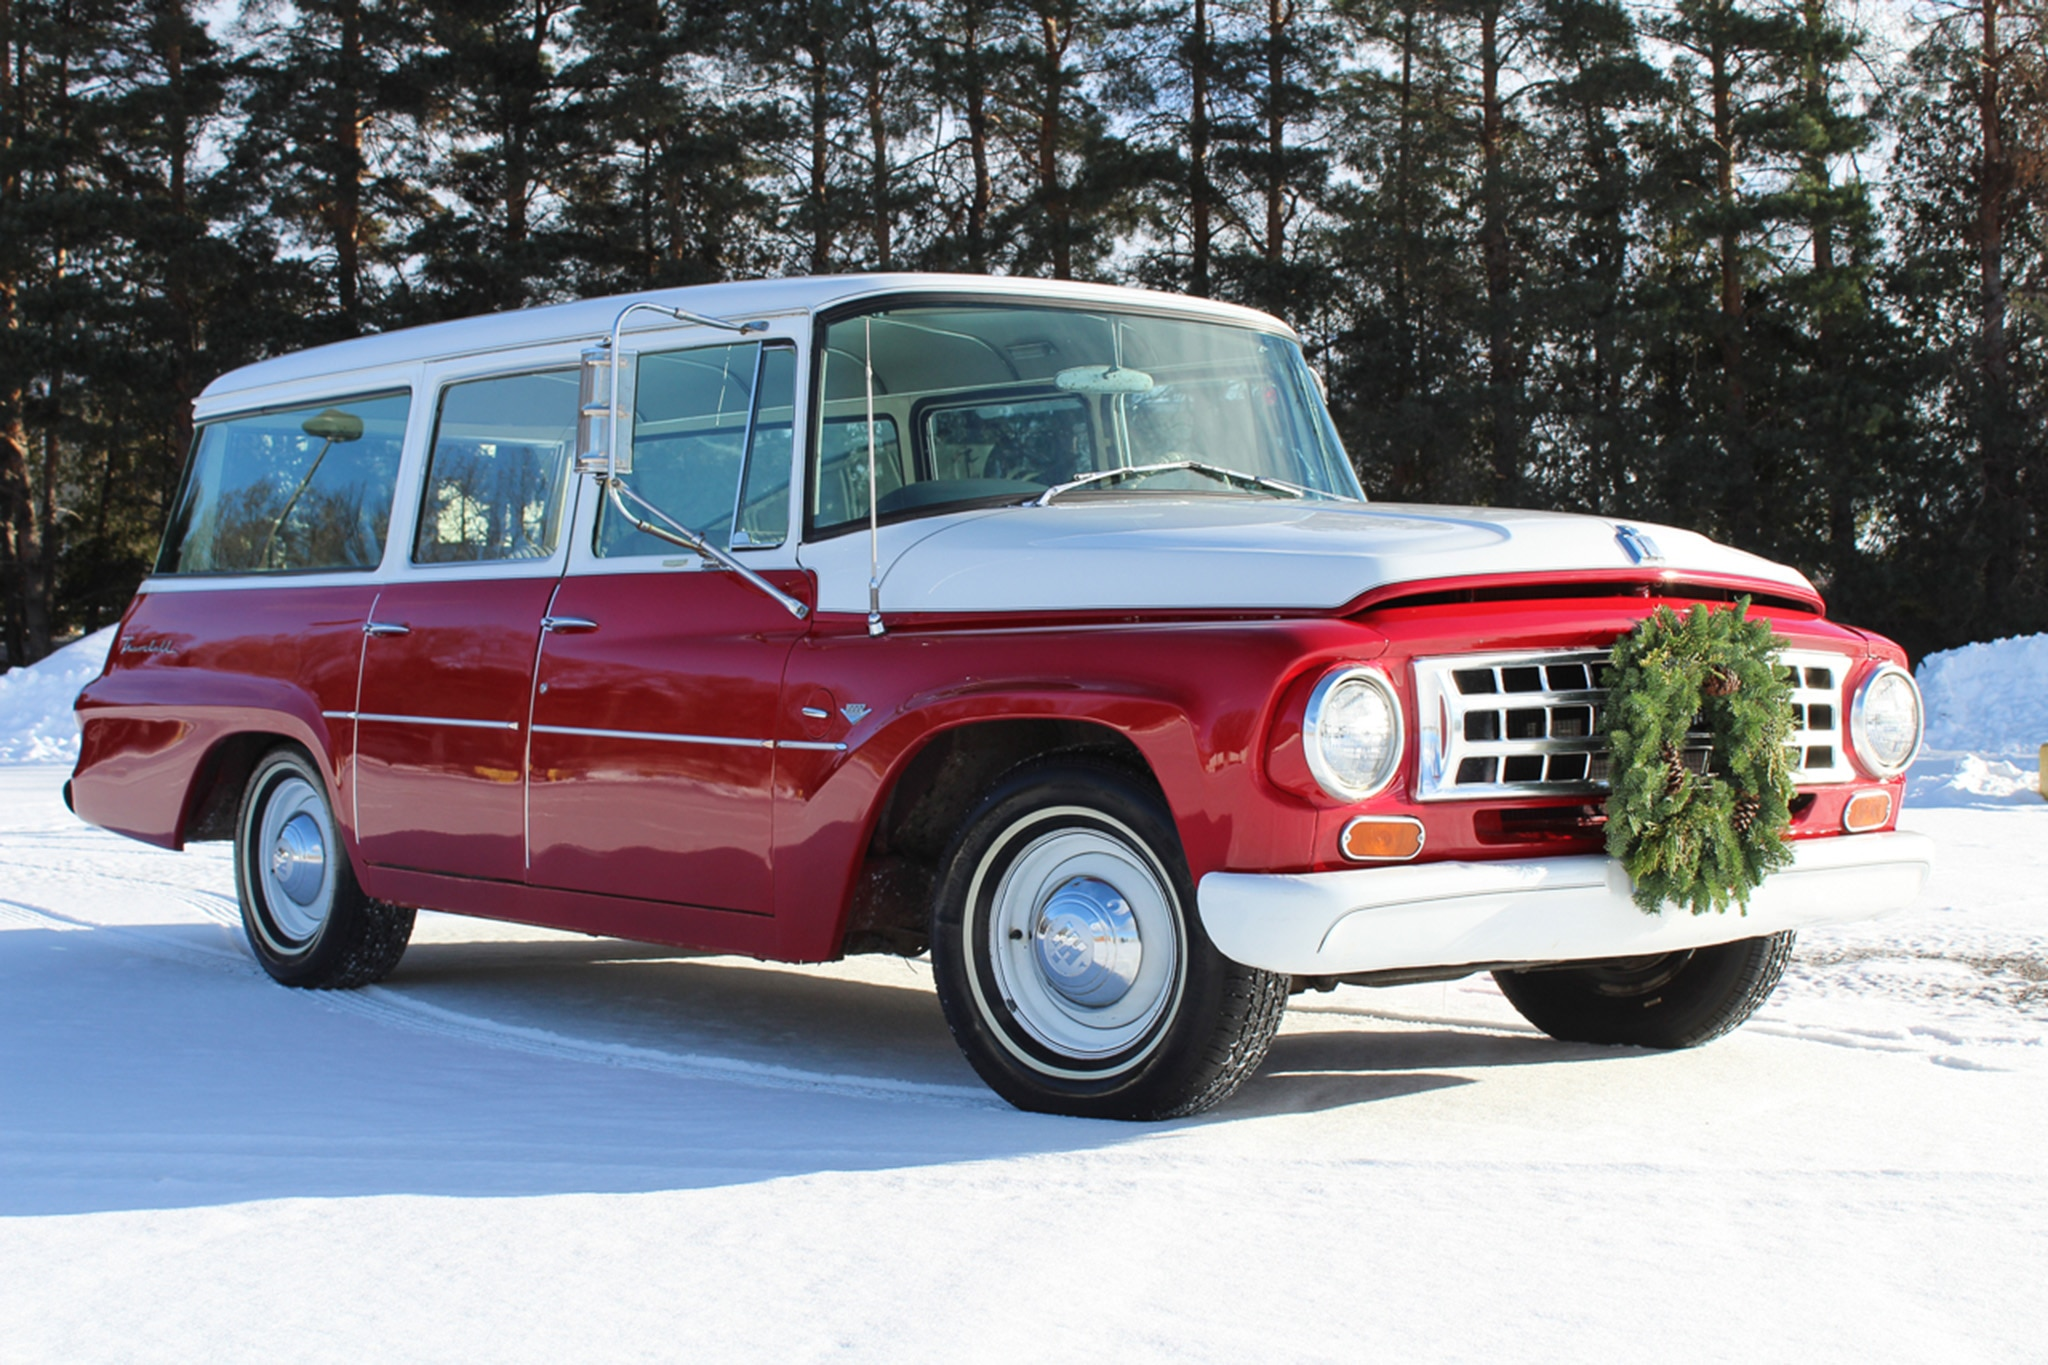 Truck Ford For Sale >> Just Listed: 1963 International Harvester Travelall C-1000 | Automobile Magazine